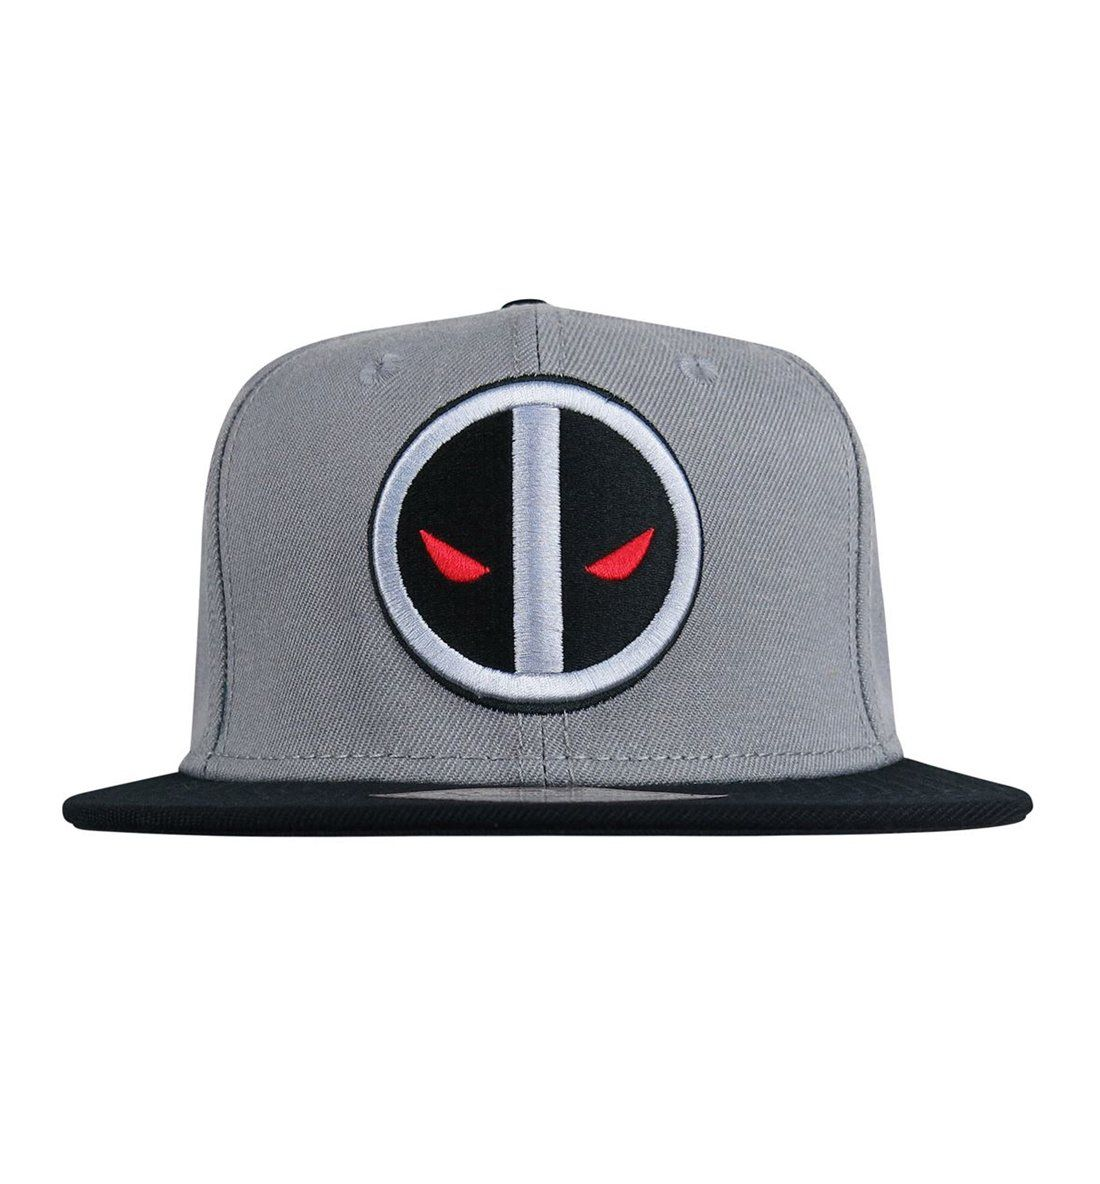 Deadpool X Force Symbol Snapback Hat Deadpool Snapback And Symbols